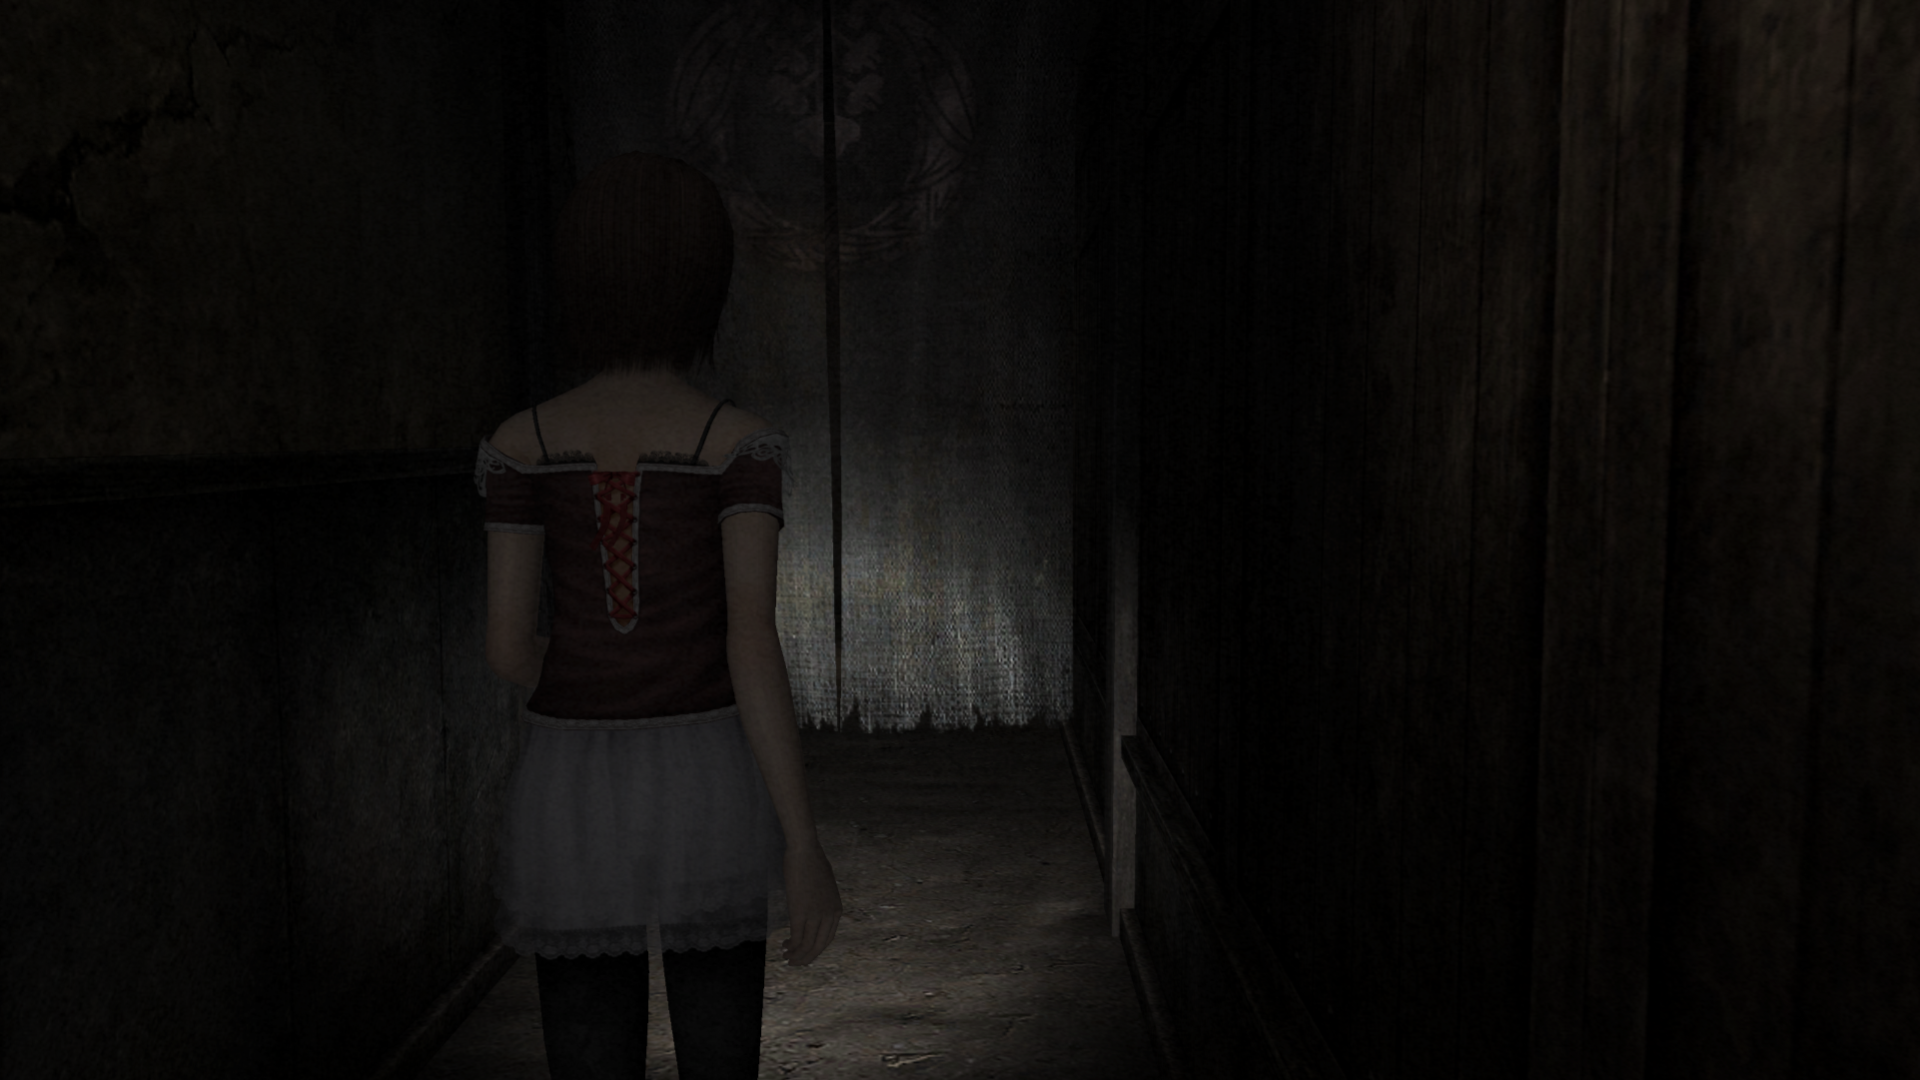 Project Zero/Fatal Frame 2: Wii Edition |OT| | Page 4 | NeoGAF